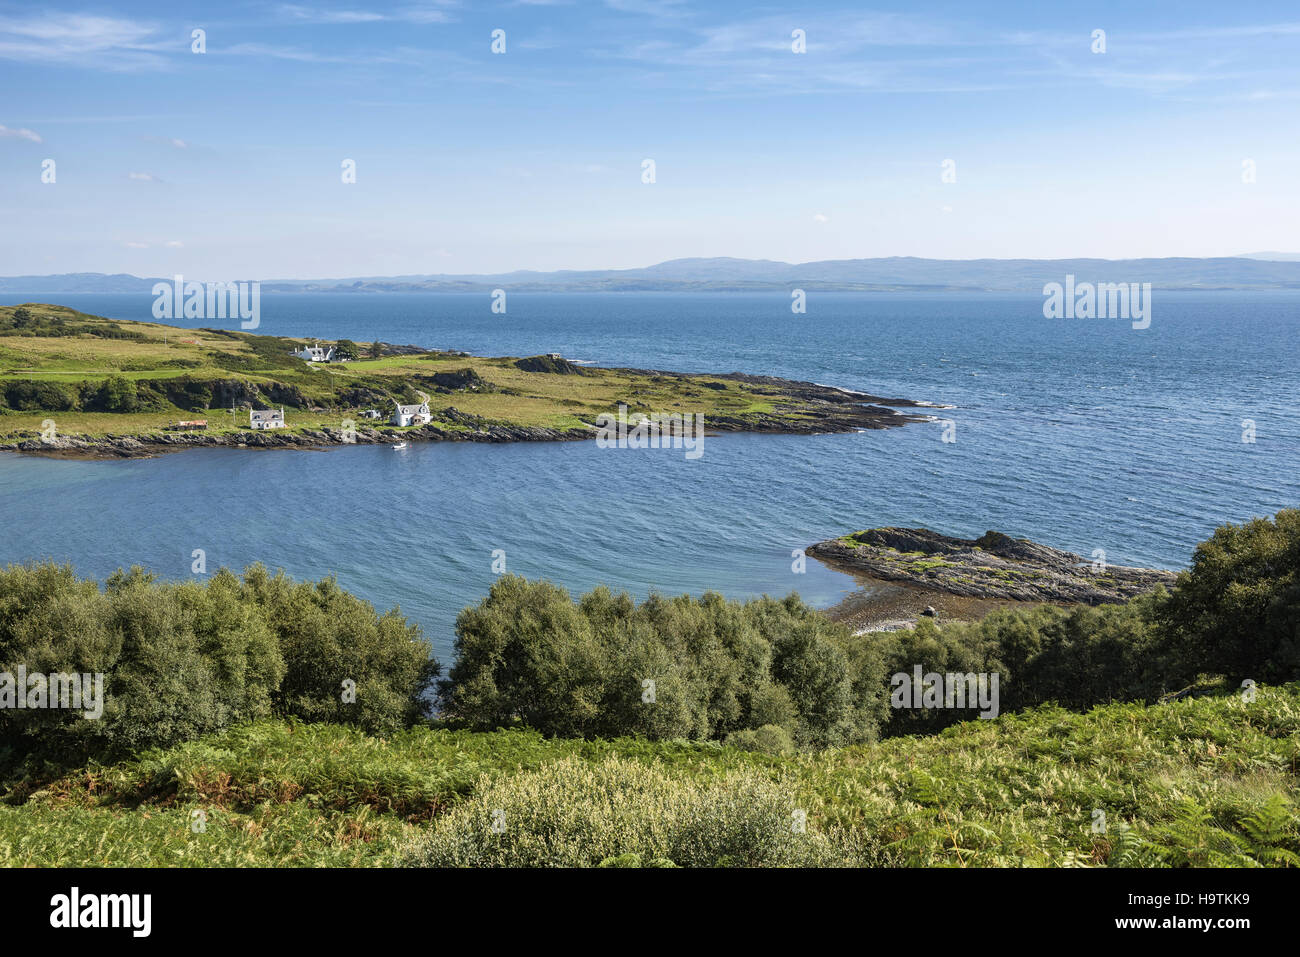 View over the Bay Tarbert, Isle of Jura, Inner Hebrides, Scotland, United Kingdom - Stock Image